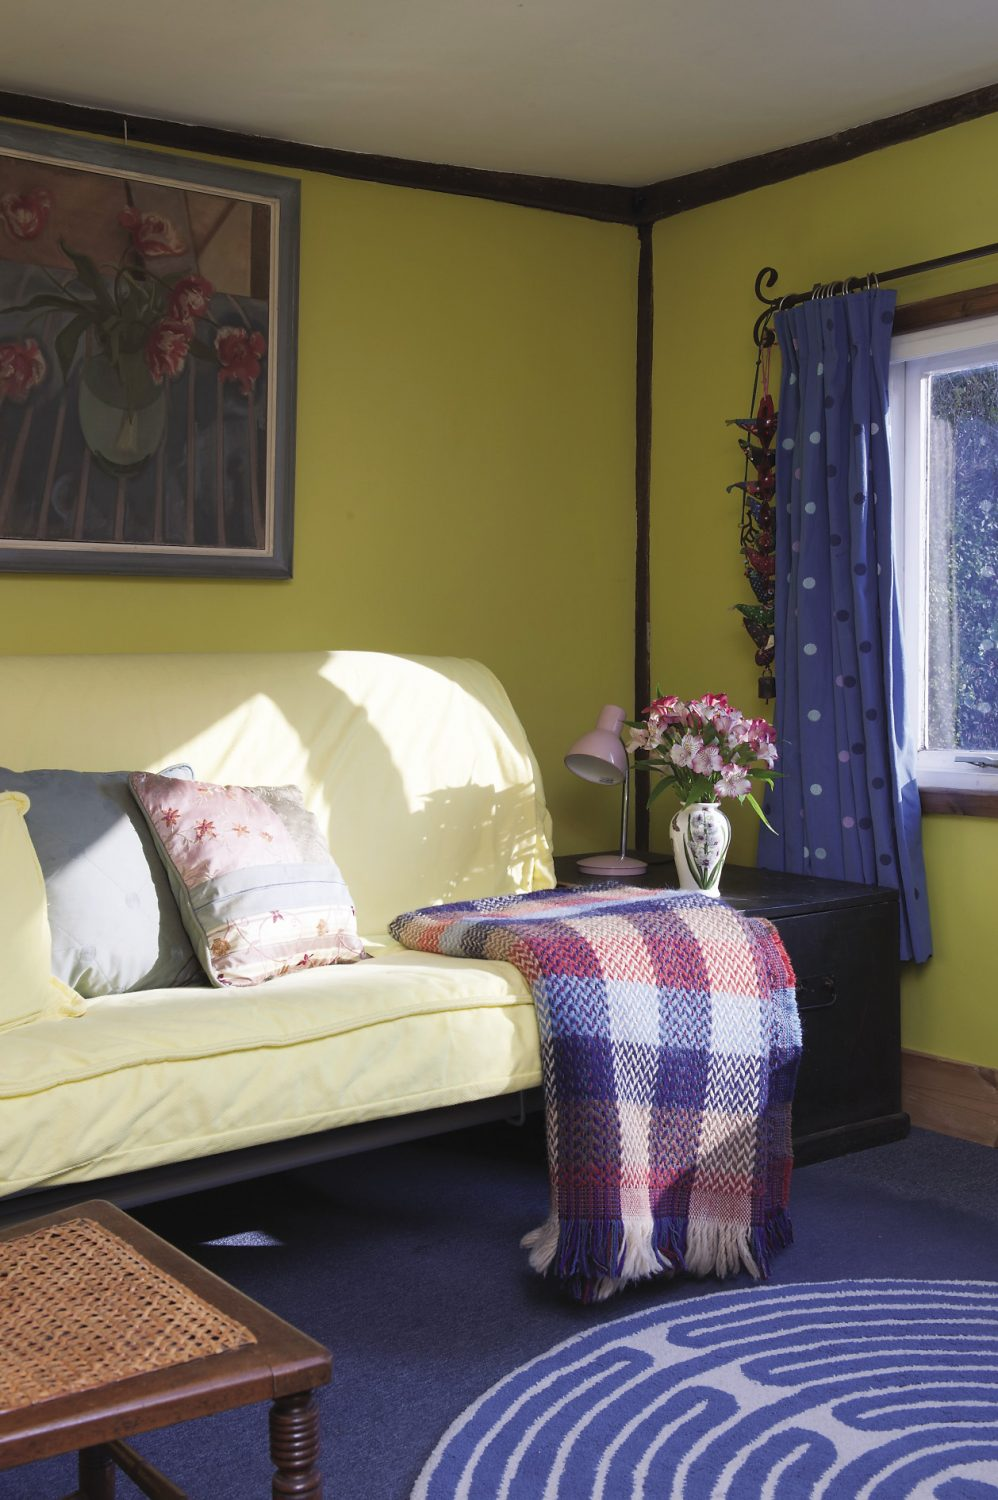 Light pours in through the window in the spare room, bringing its bright yellow walls to life